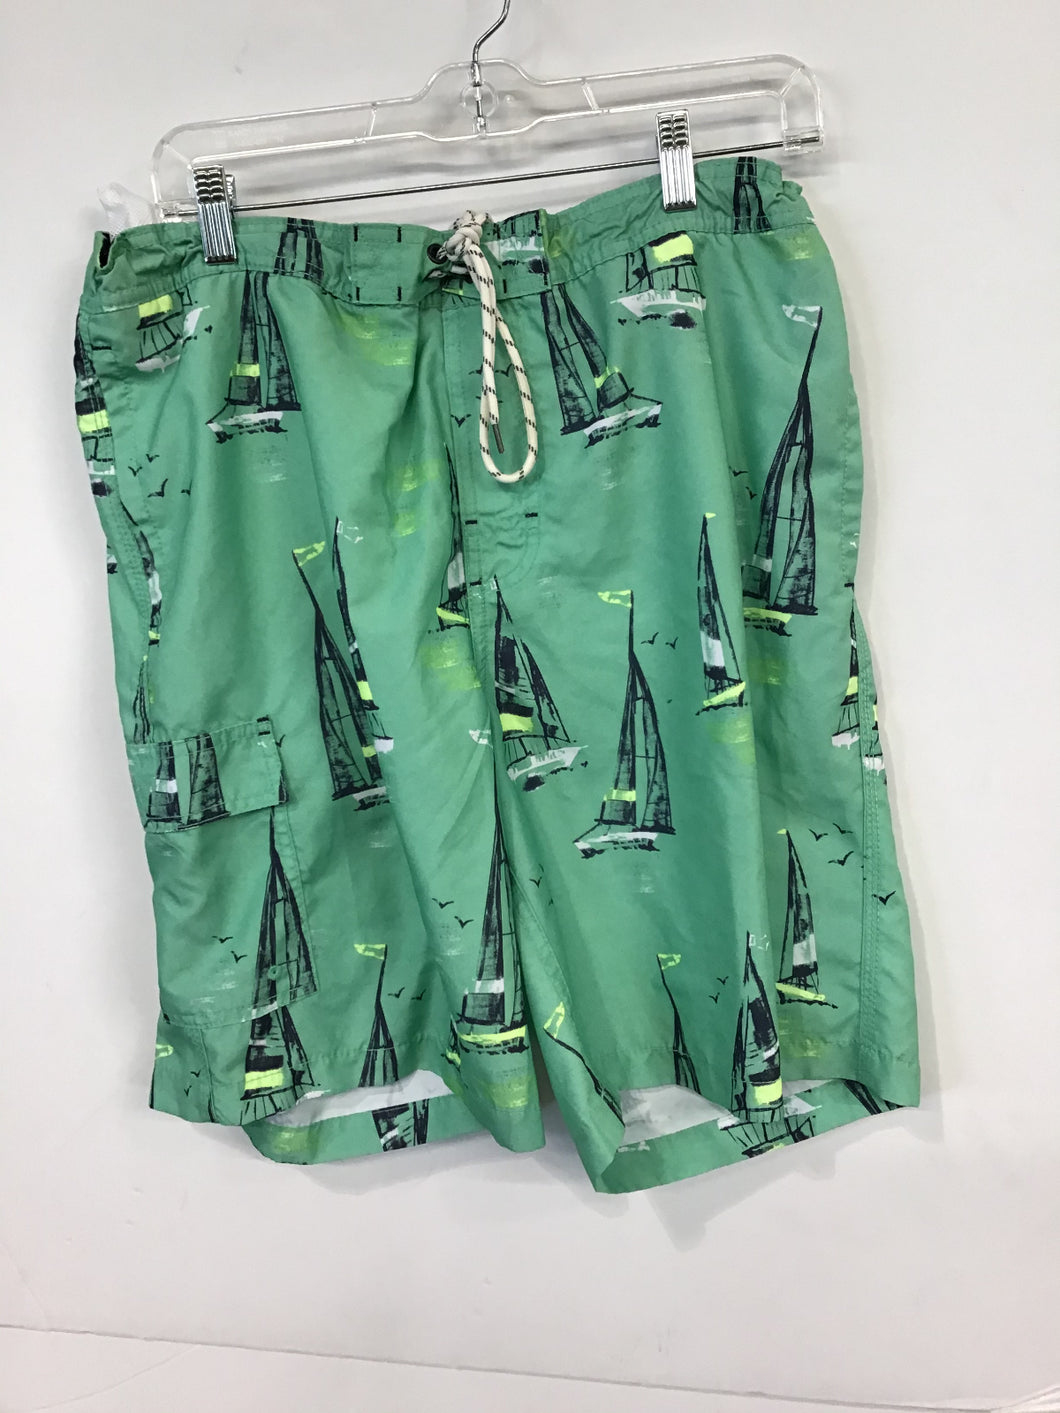 Good Fellow Swim Trunks Sz. L